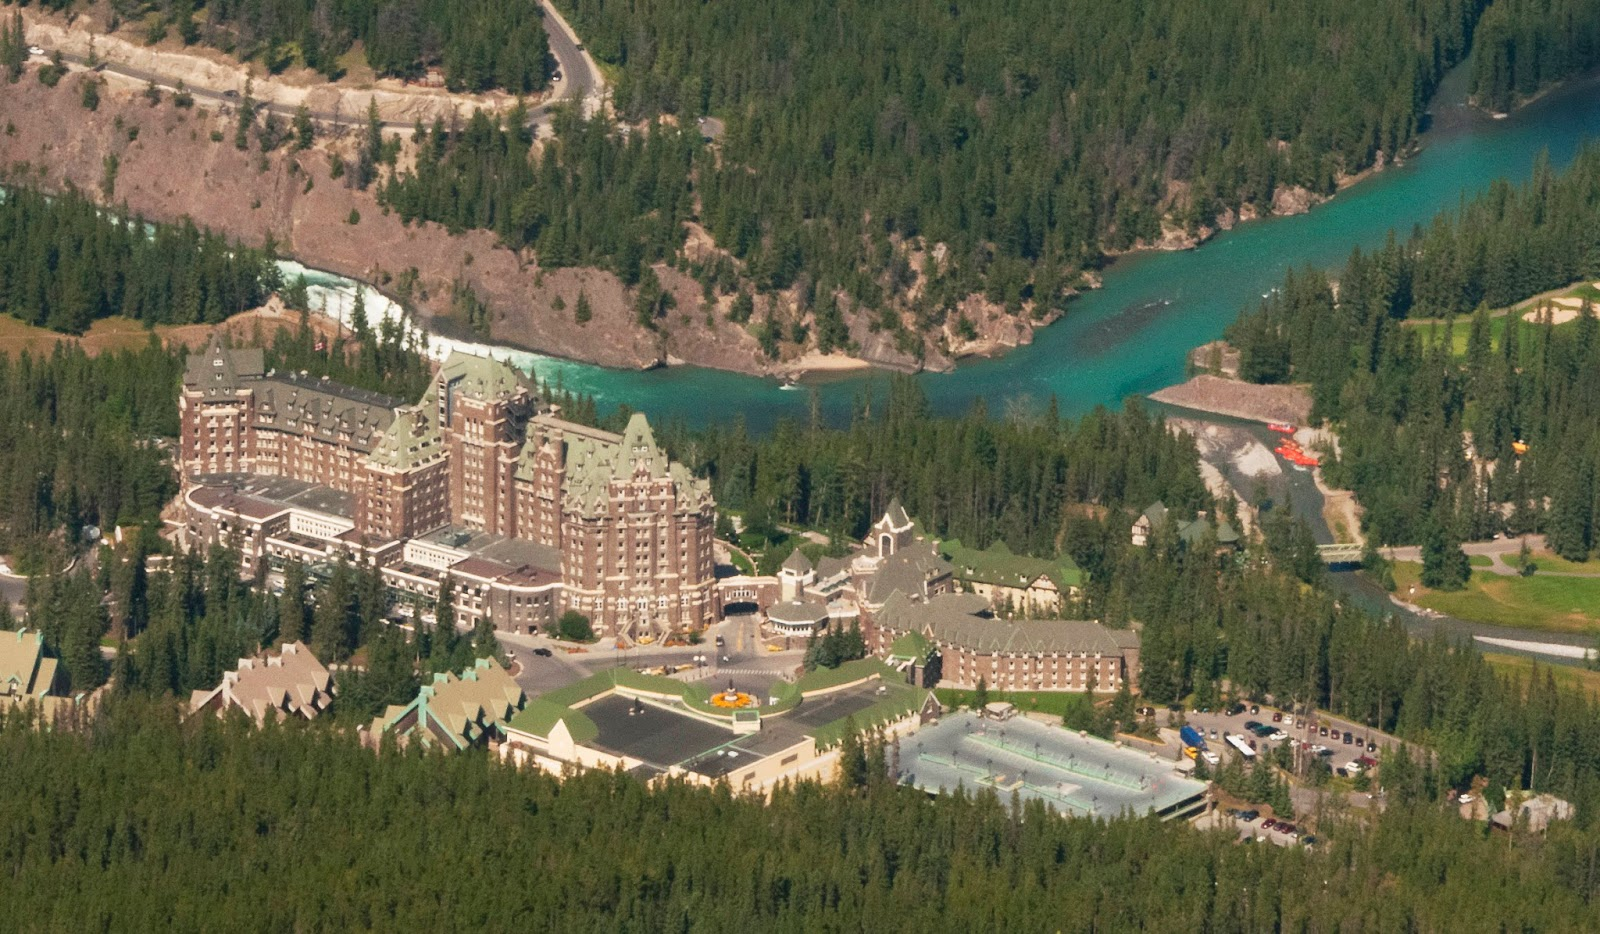 banff gondola with Immigration Threatens European Style Architecture In Canada on Aprueban Hoy El Teleferico En Orizaba moreover Sky Bistro together with Banff Alberta Canada Things To Do Winter further The Rimrock Resort Hotel moreover Most Breathtaking Cable Car Rides World.